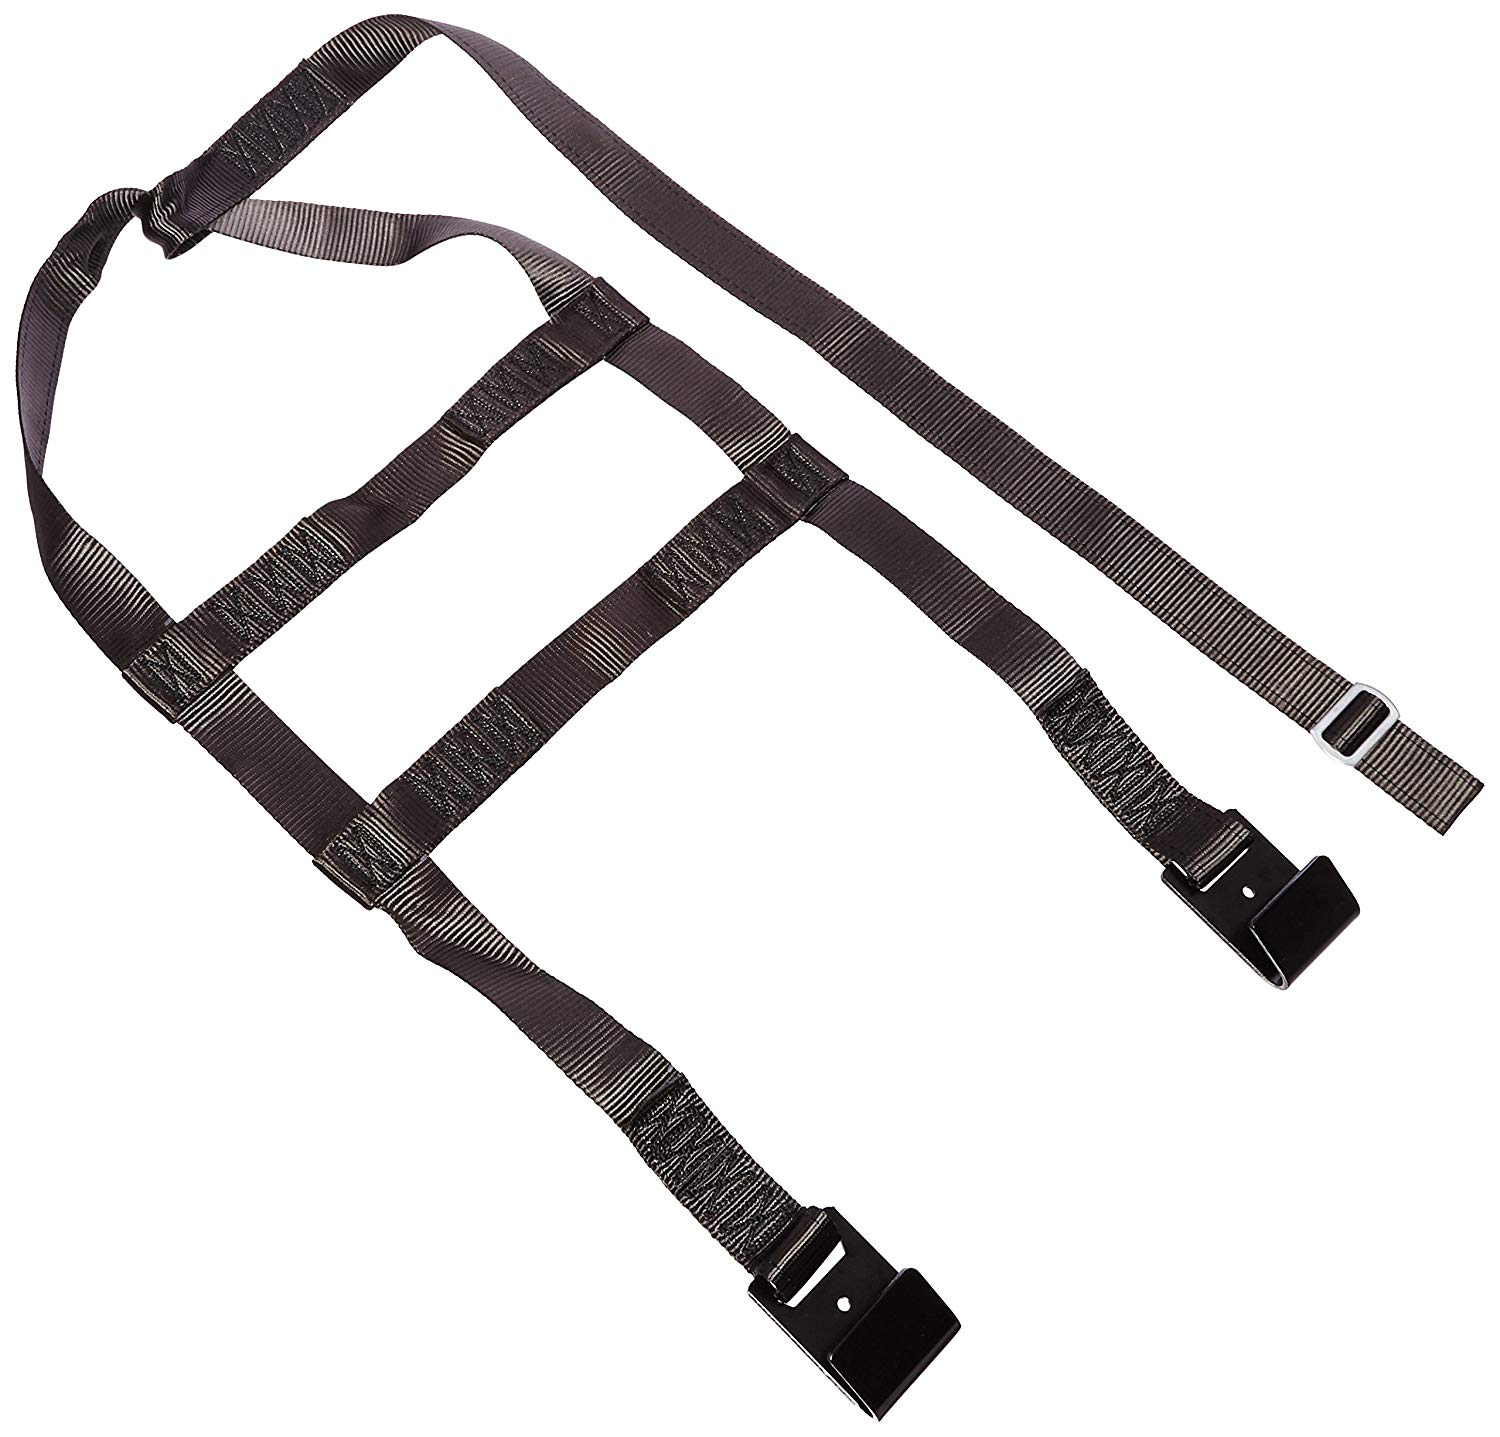 Demco 03528 Replacement Tow Dolly Tie-Down Strap